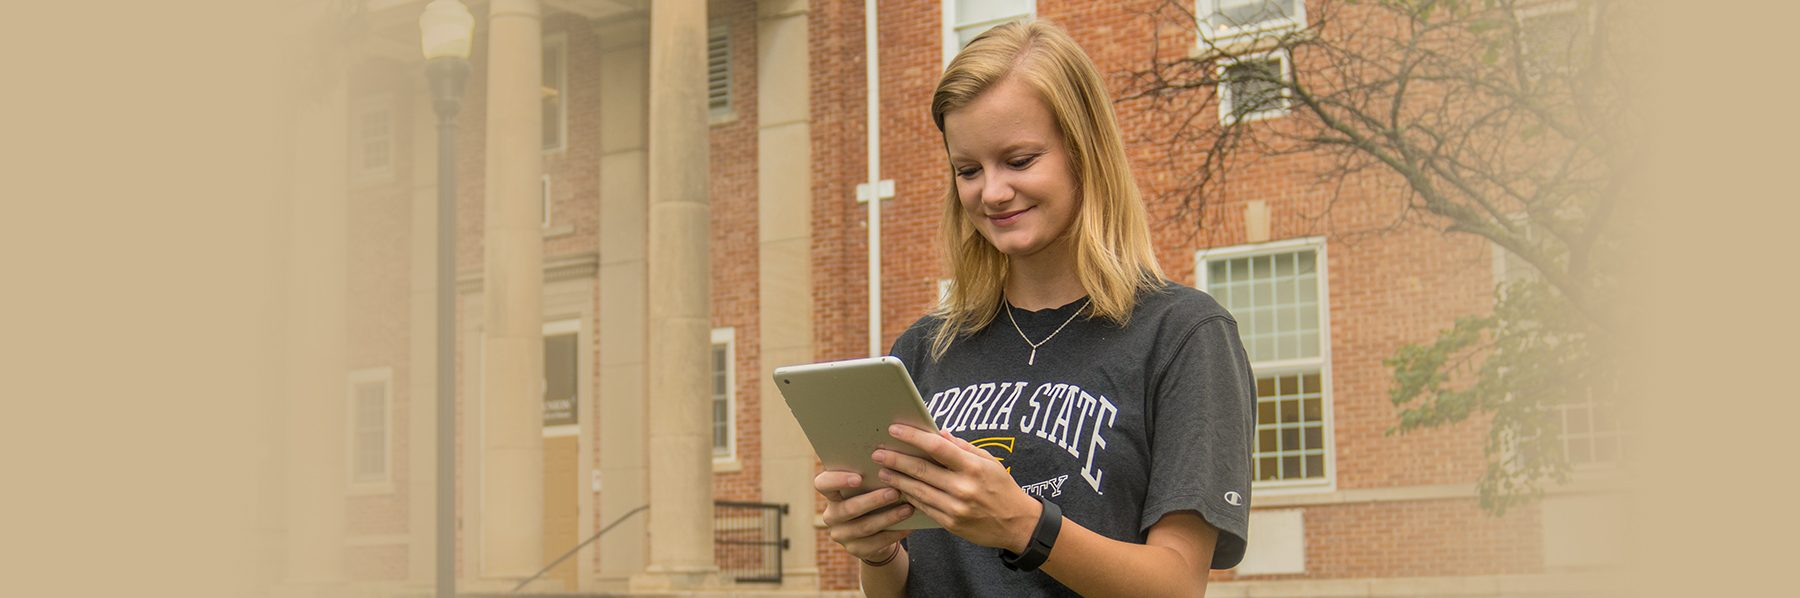 ESU student doing mobile banking with LCSB mobile app